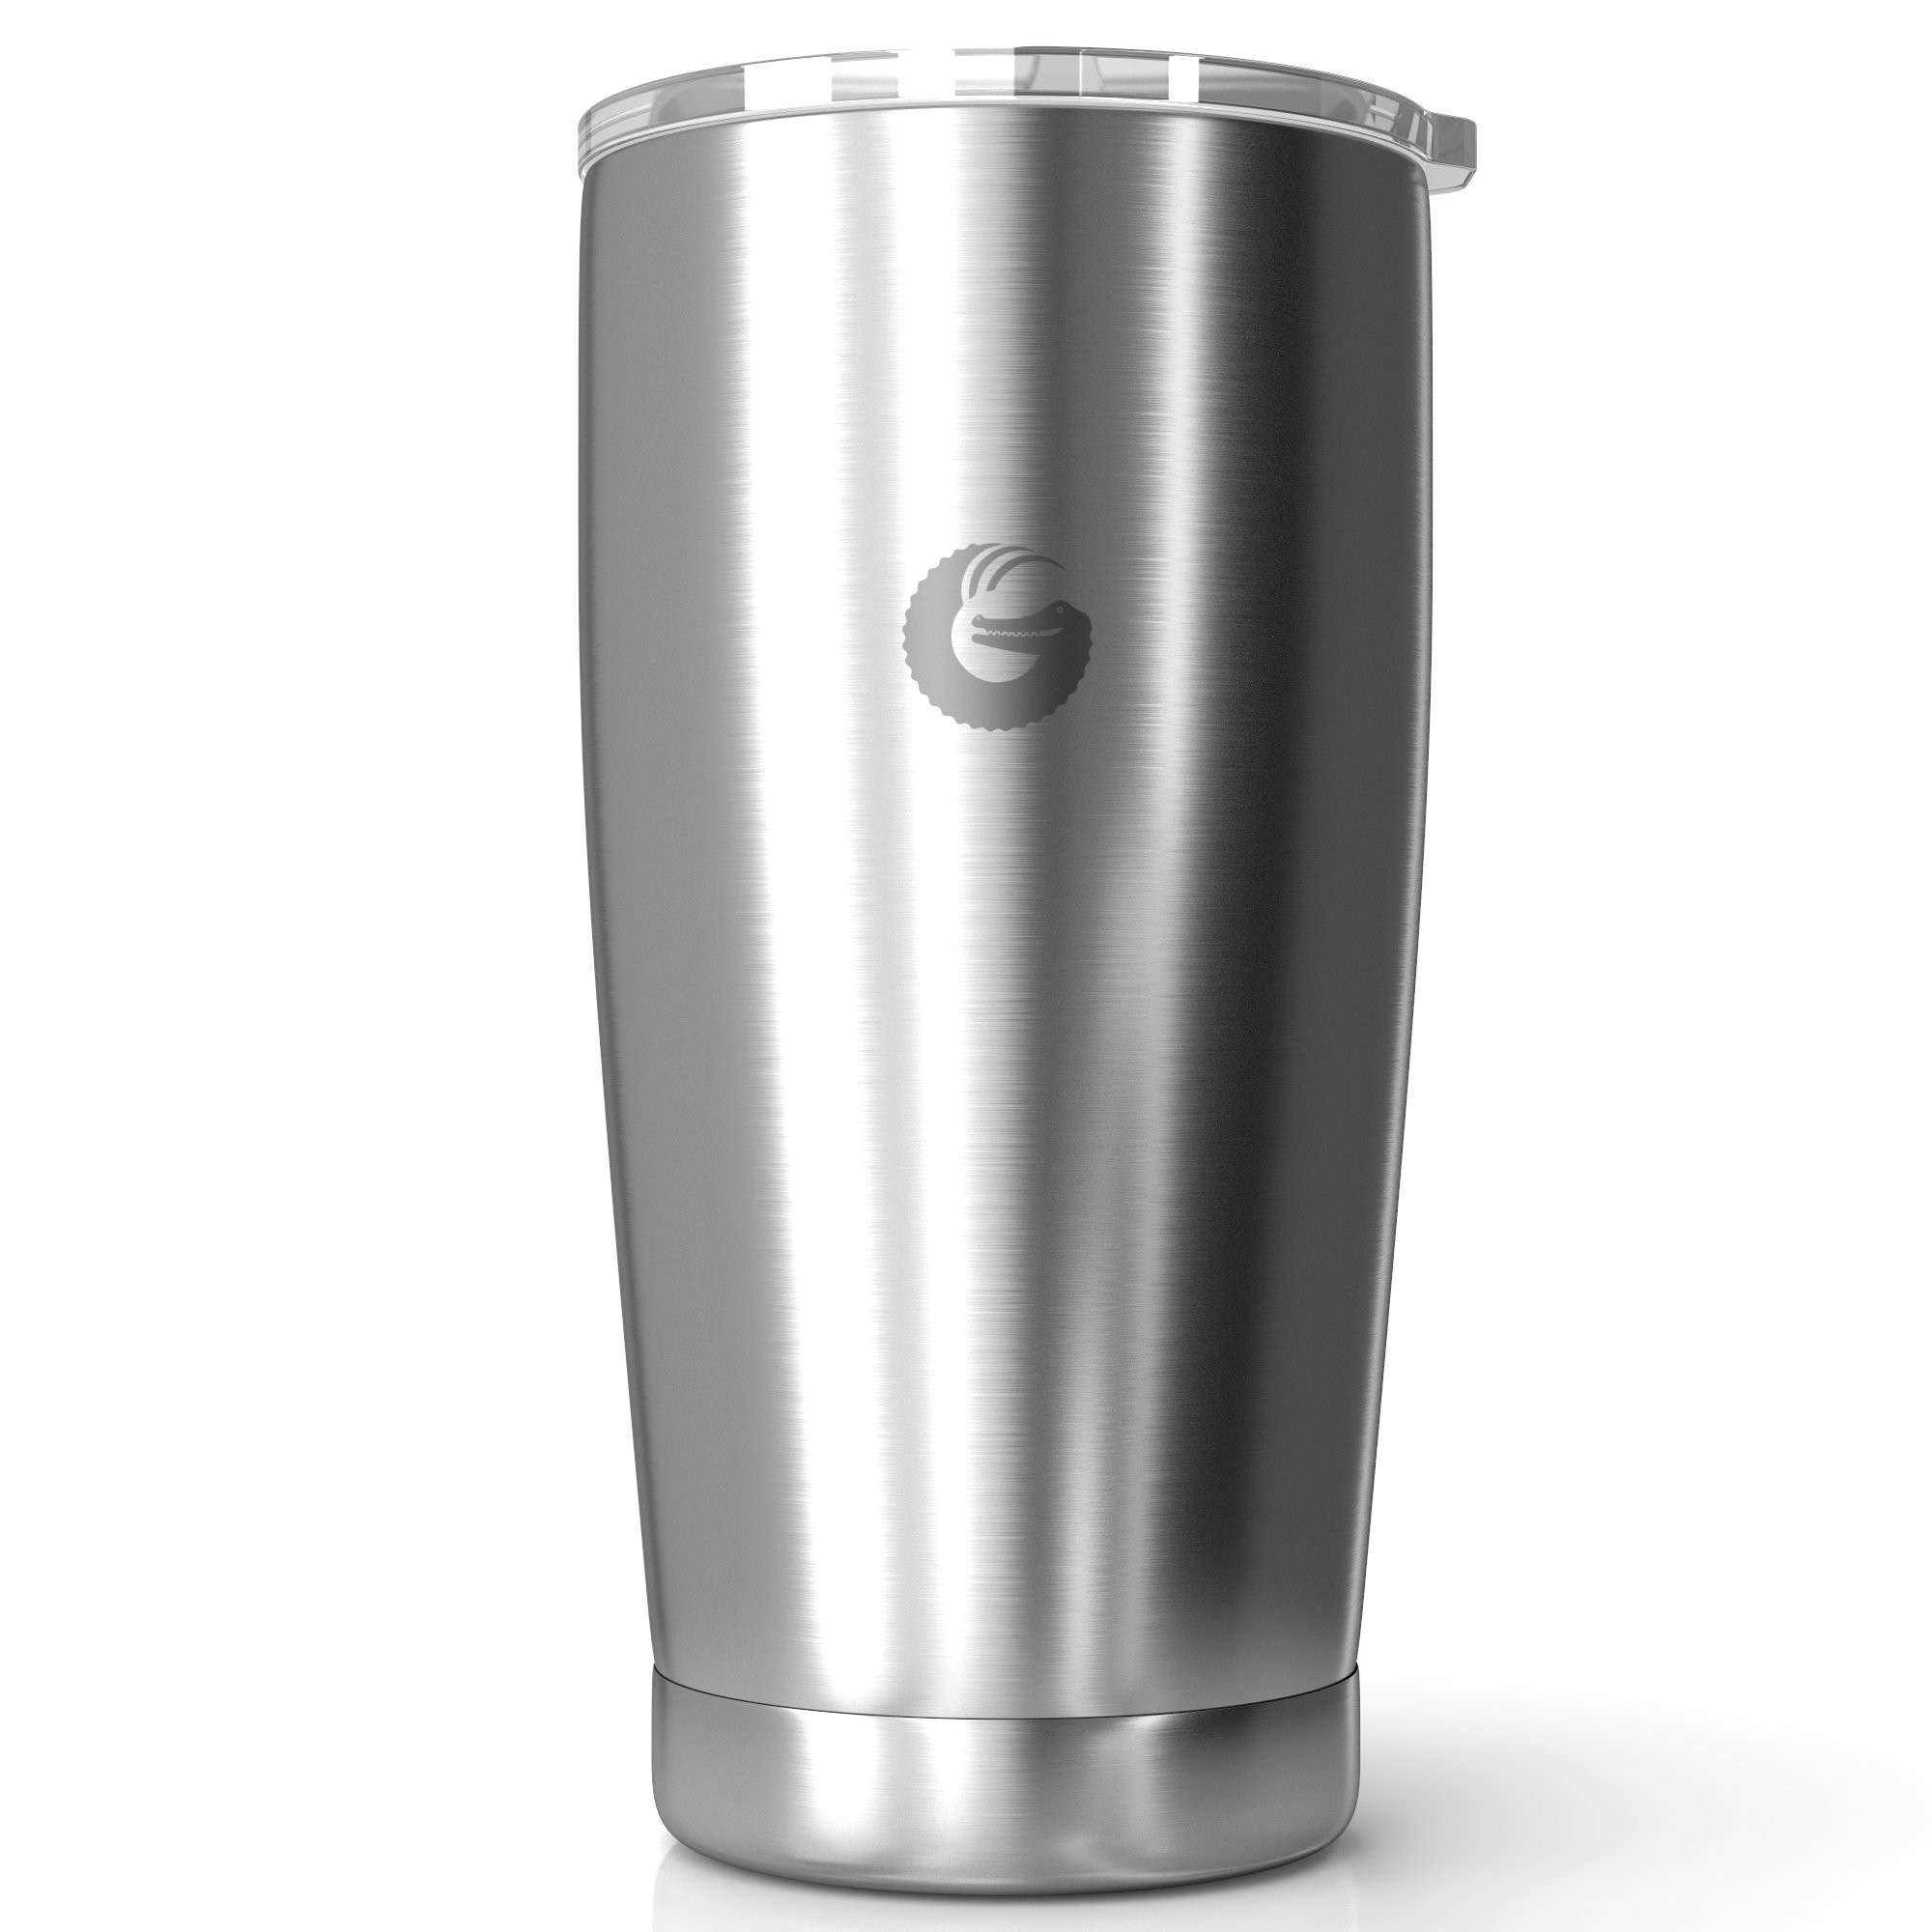 Coffee Gator Pour Over Coffee Maker - All in One Thermal Travel Mug and Brewer - Vacuum Insulated Stainless Steel - 20 ounce - Silver by Coffee Gator (Image #8)